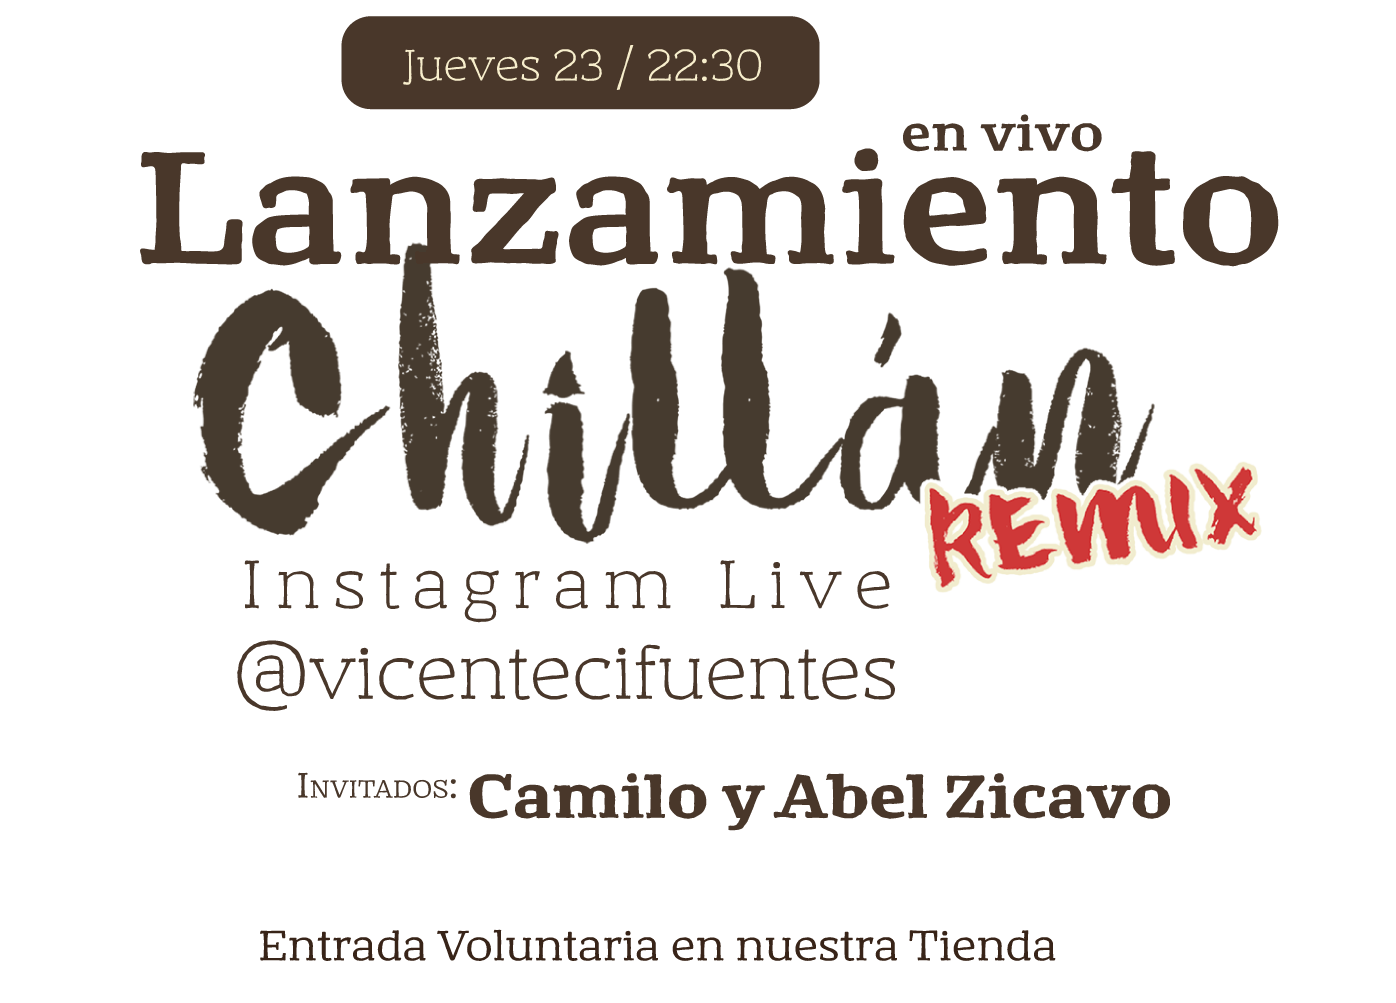 vicentecifuentes_chillan-remix_web_003